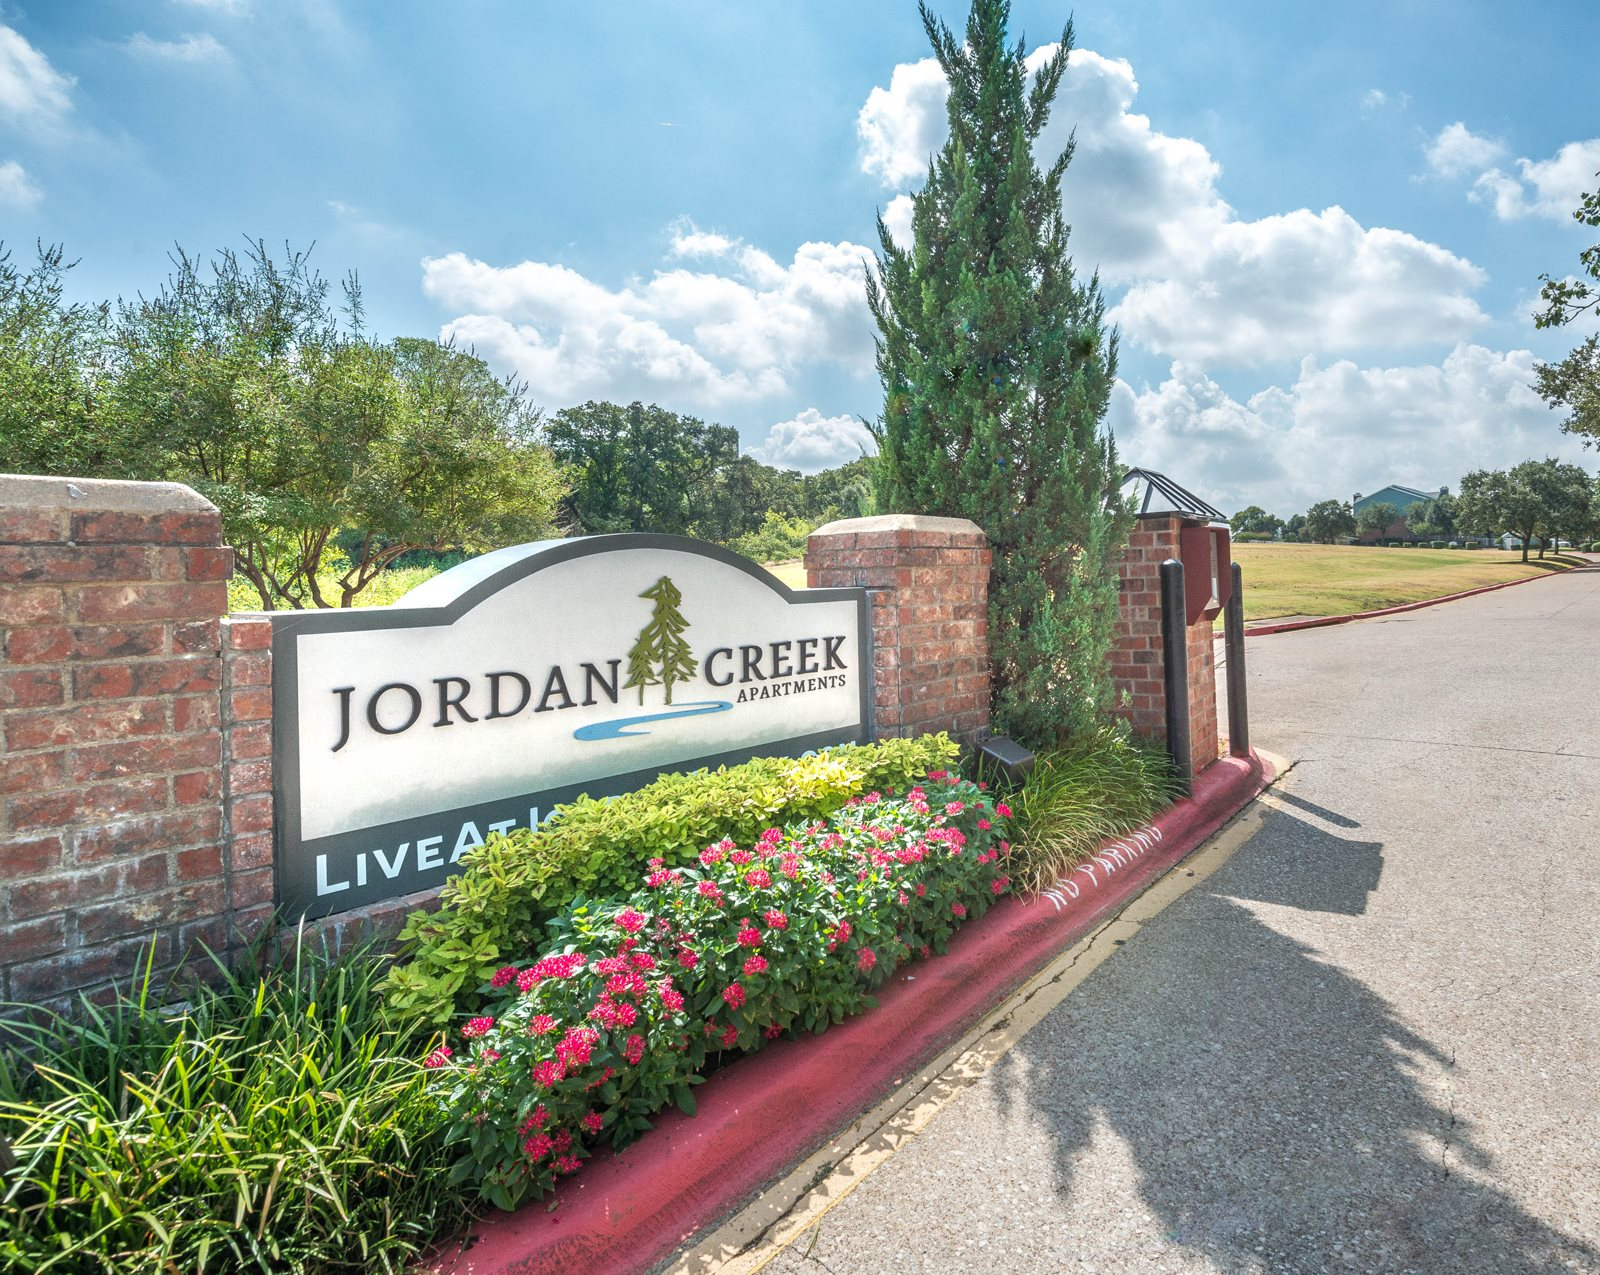 Jordan Creek Apartments background 1